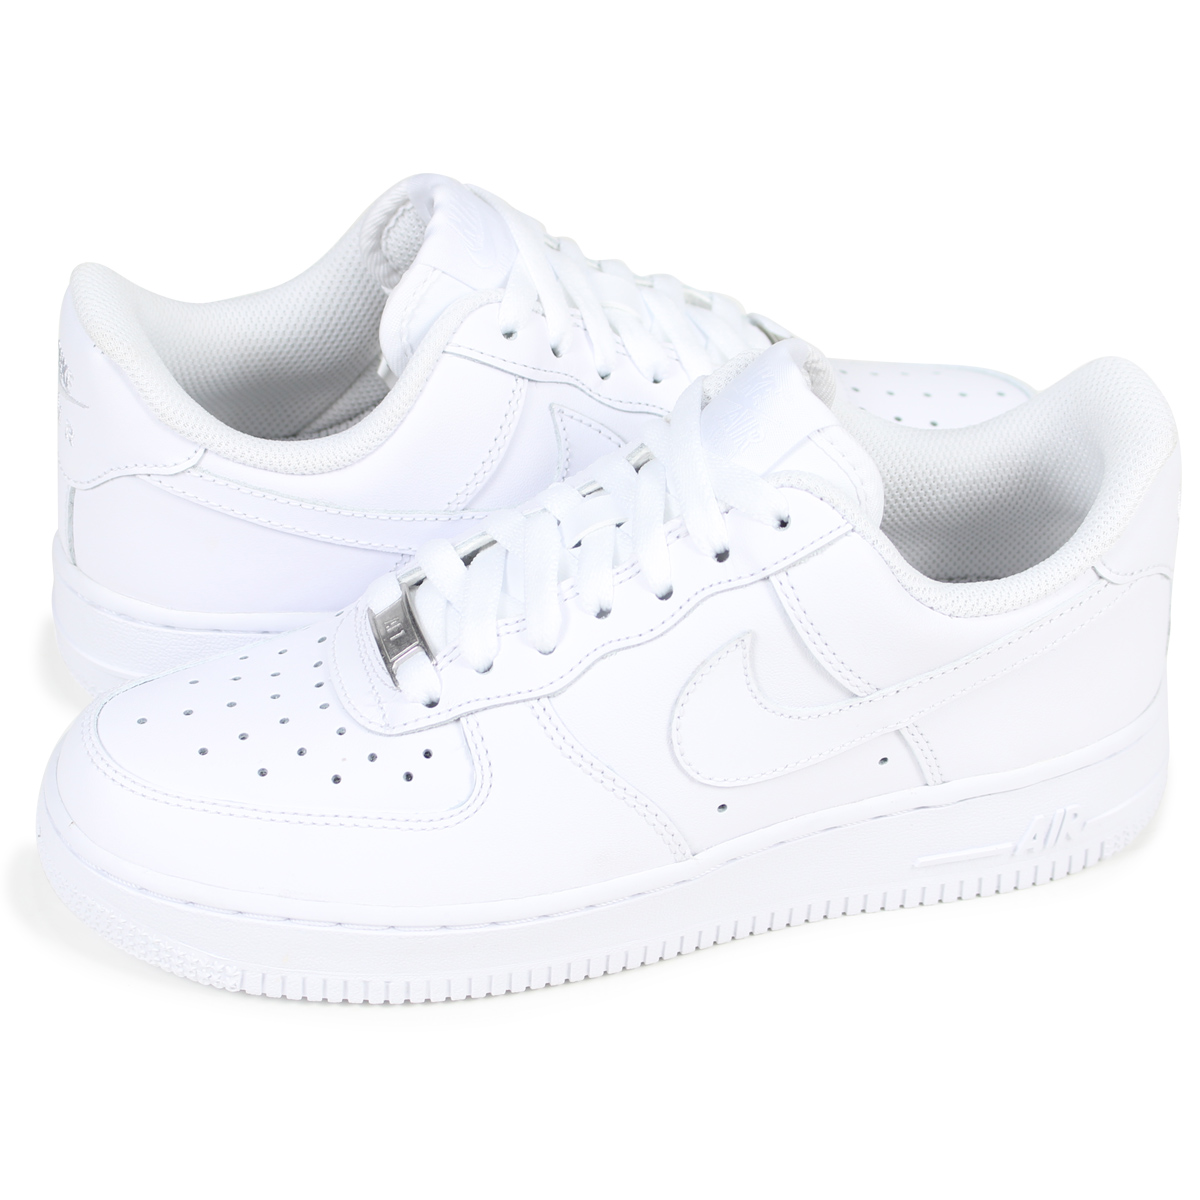 Nike NIKE air force 1 lady's sneakers WMNS AIR FORCE 1 07 315,115 112 white white